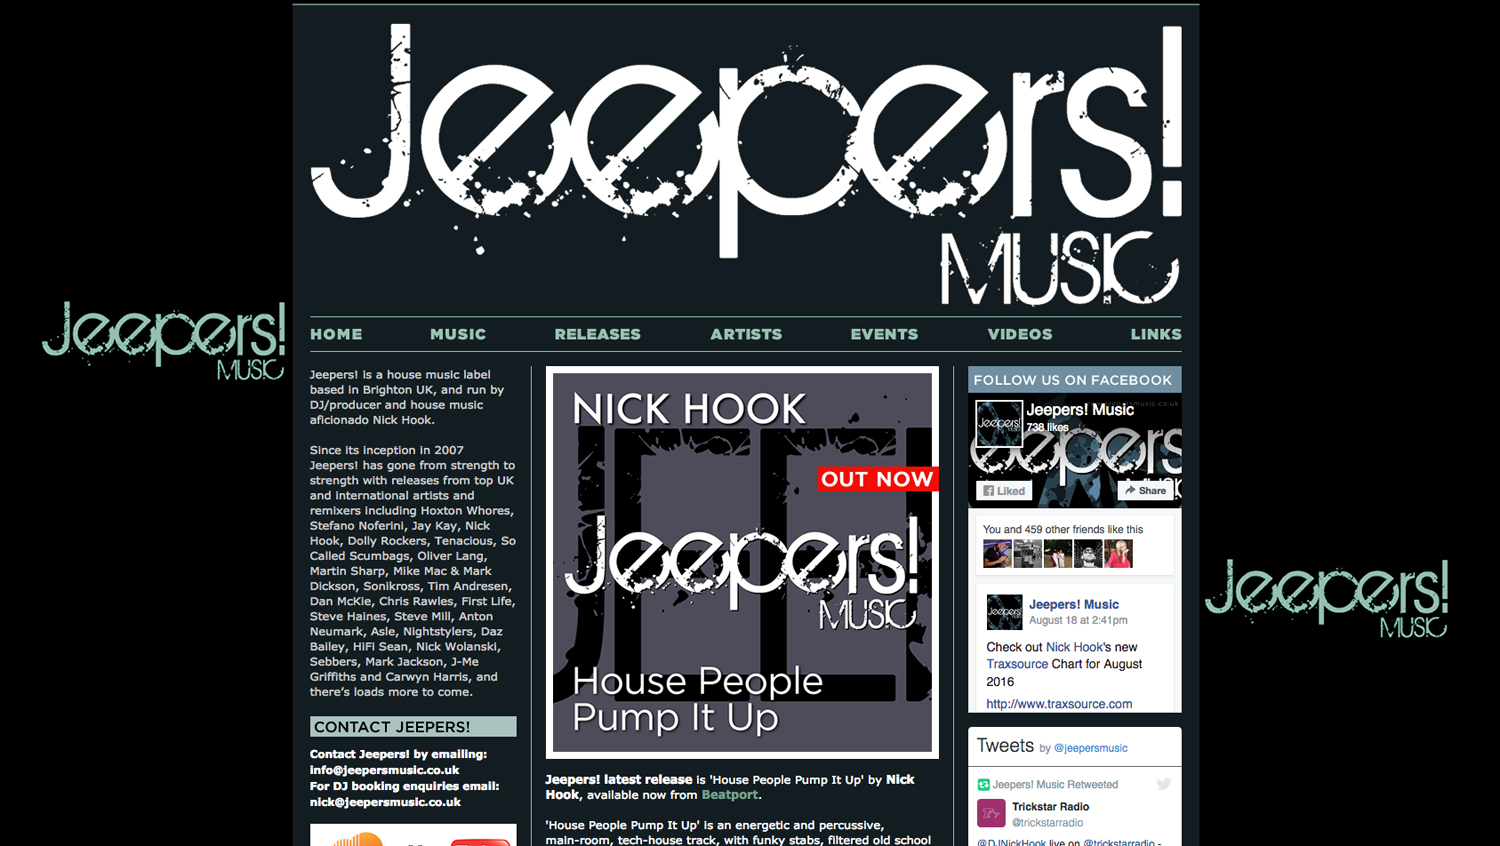 Jeepers! Music label website designed by Hook Web & Print